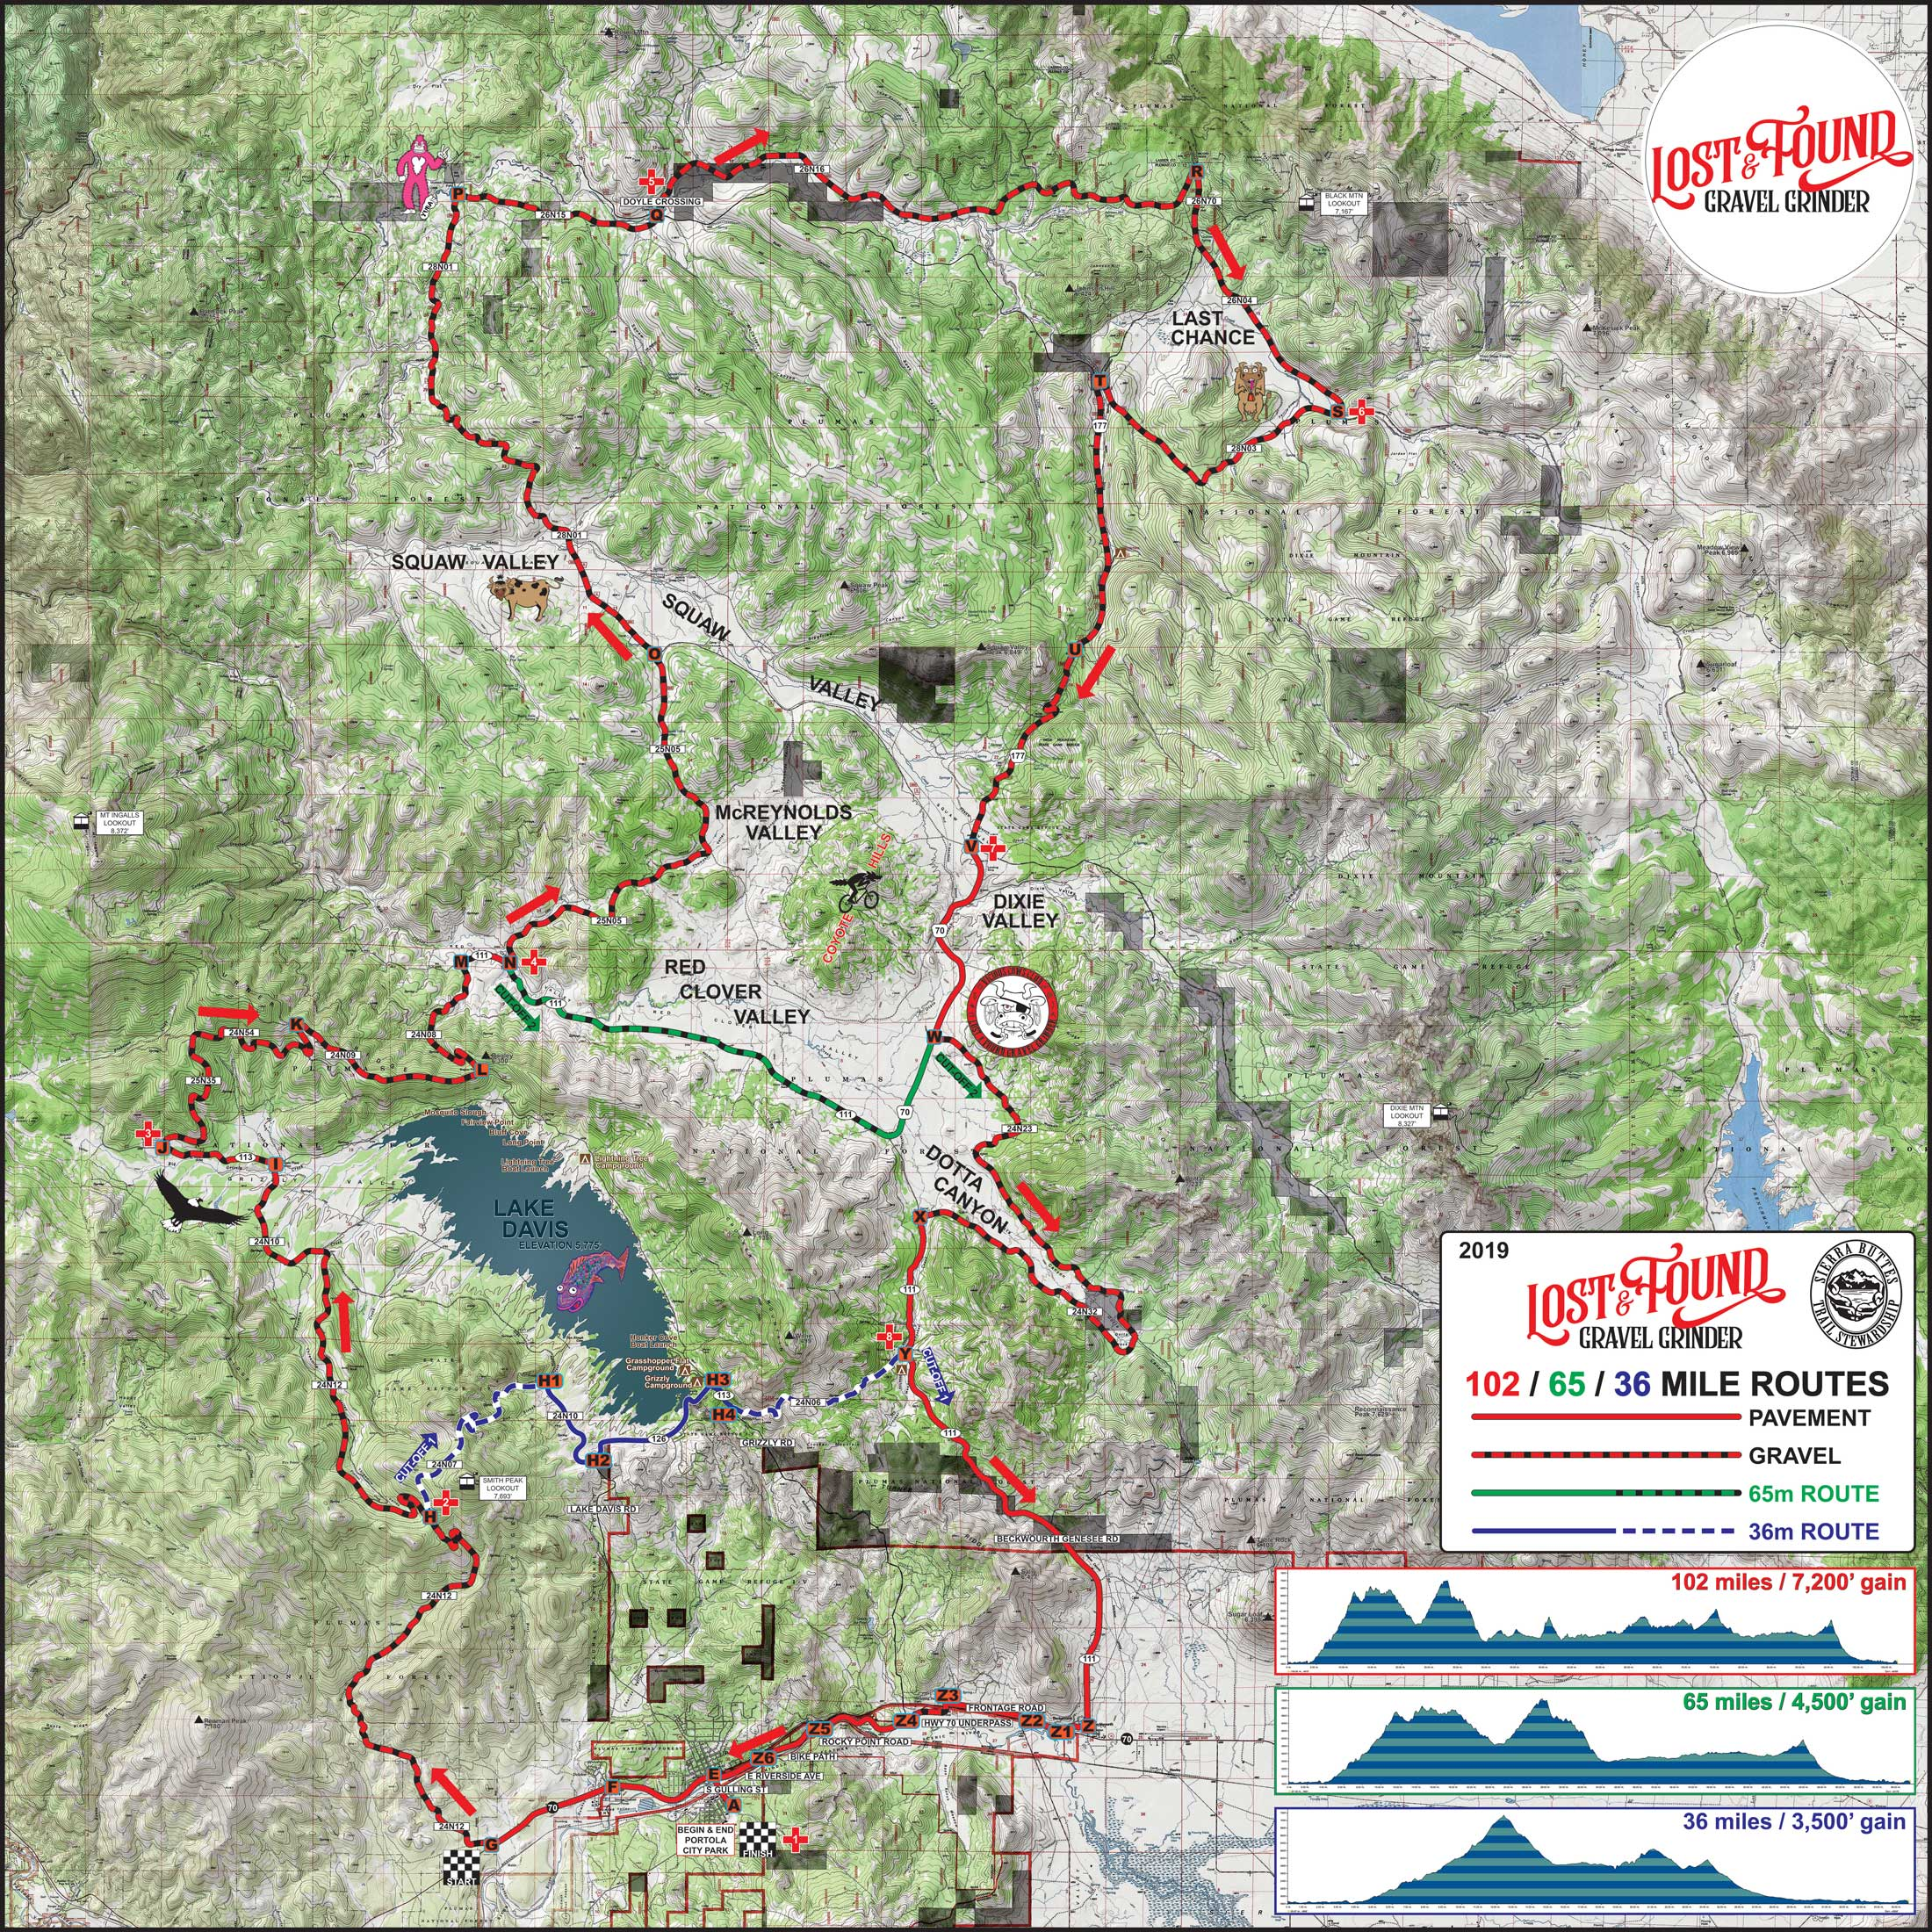 The Ride Lost and Found Gravel Grinder Course Map